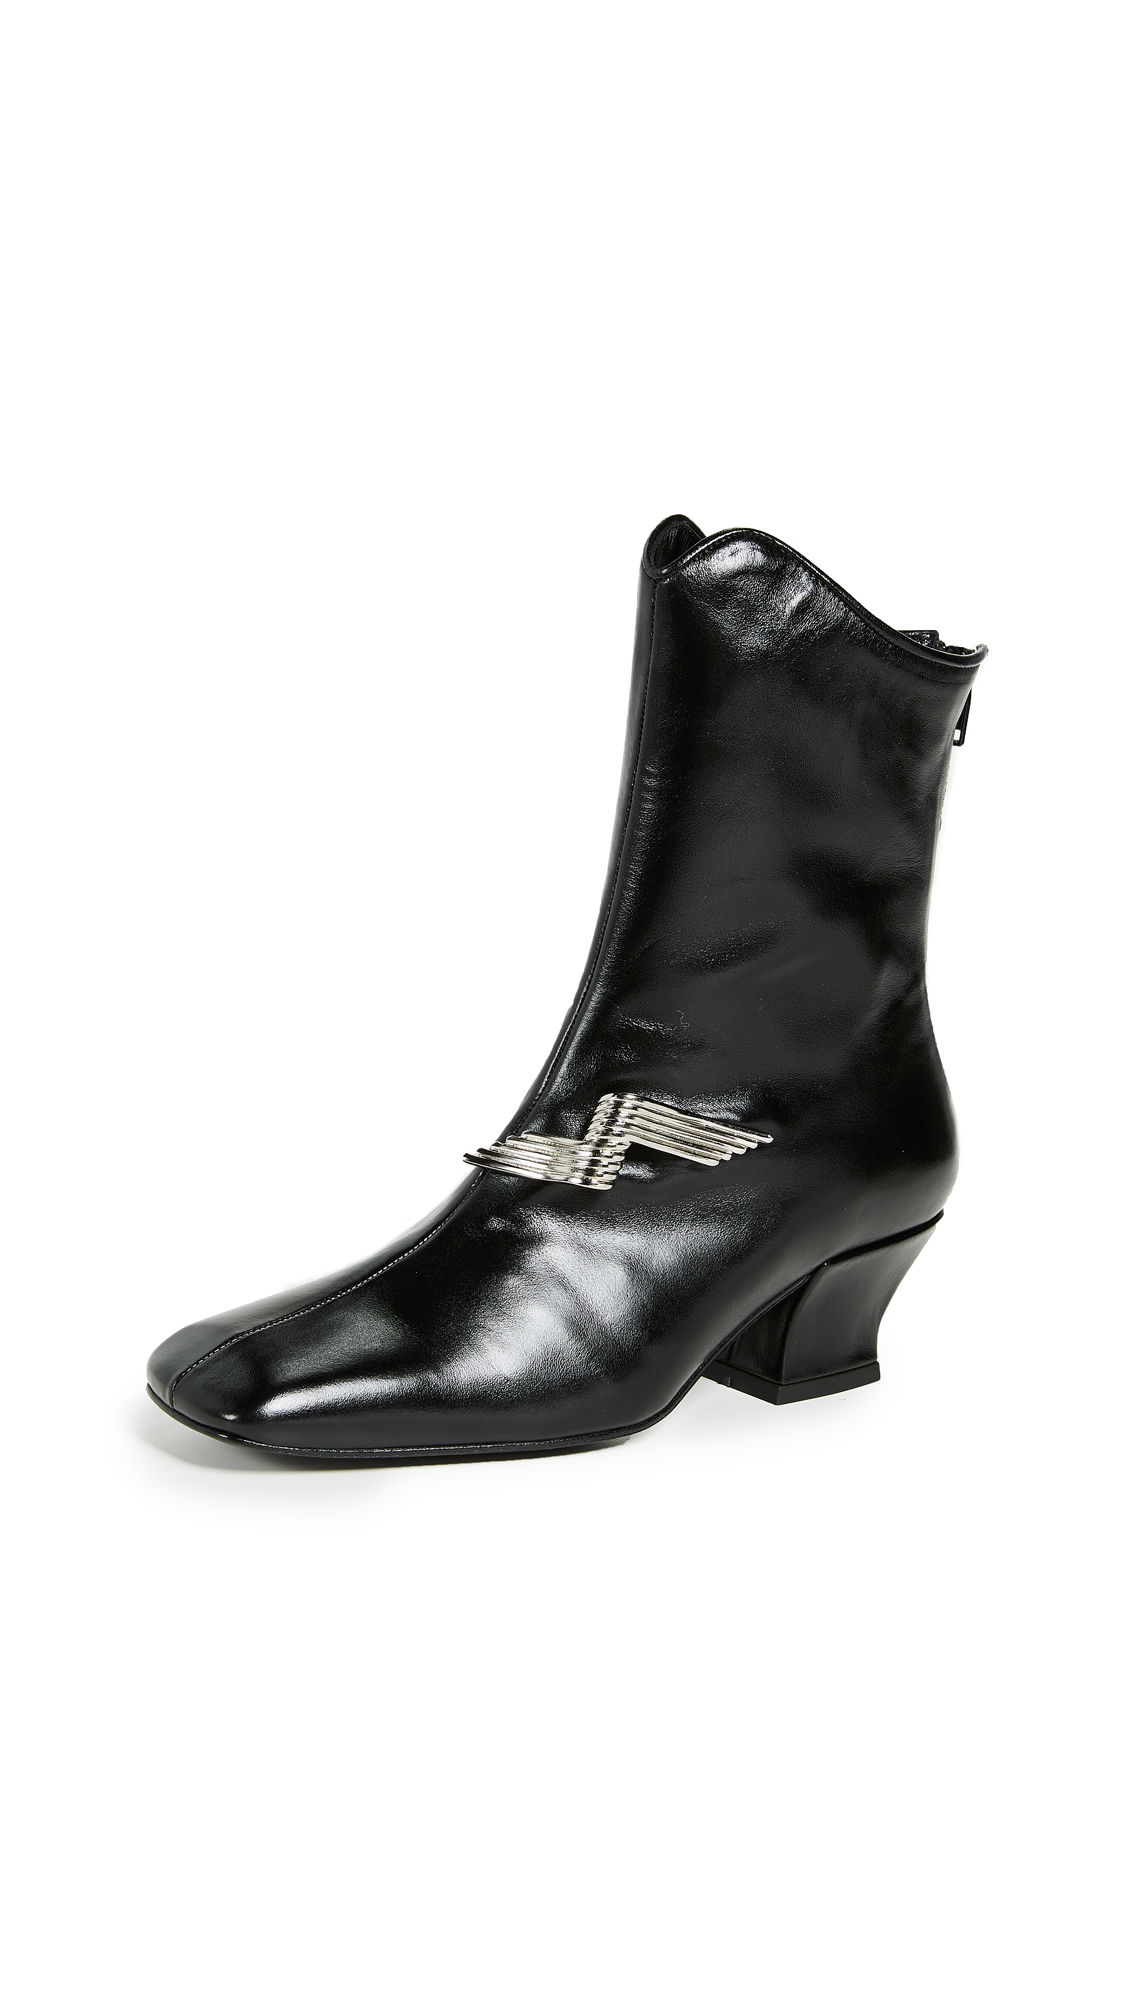 Dorateymur Han Boots - Black